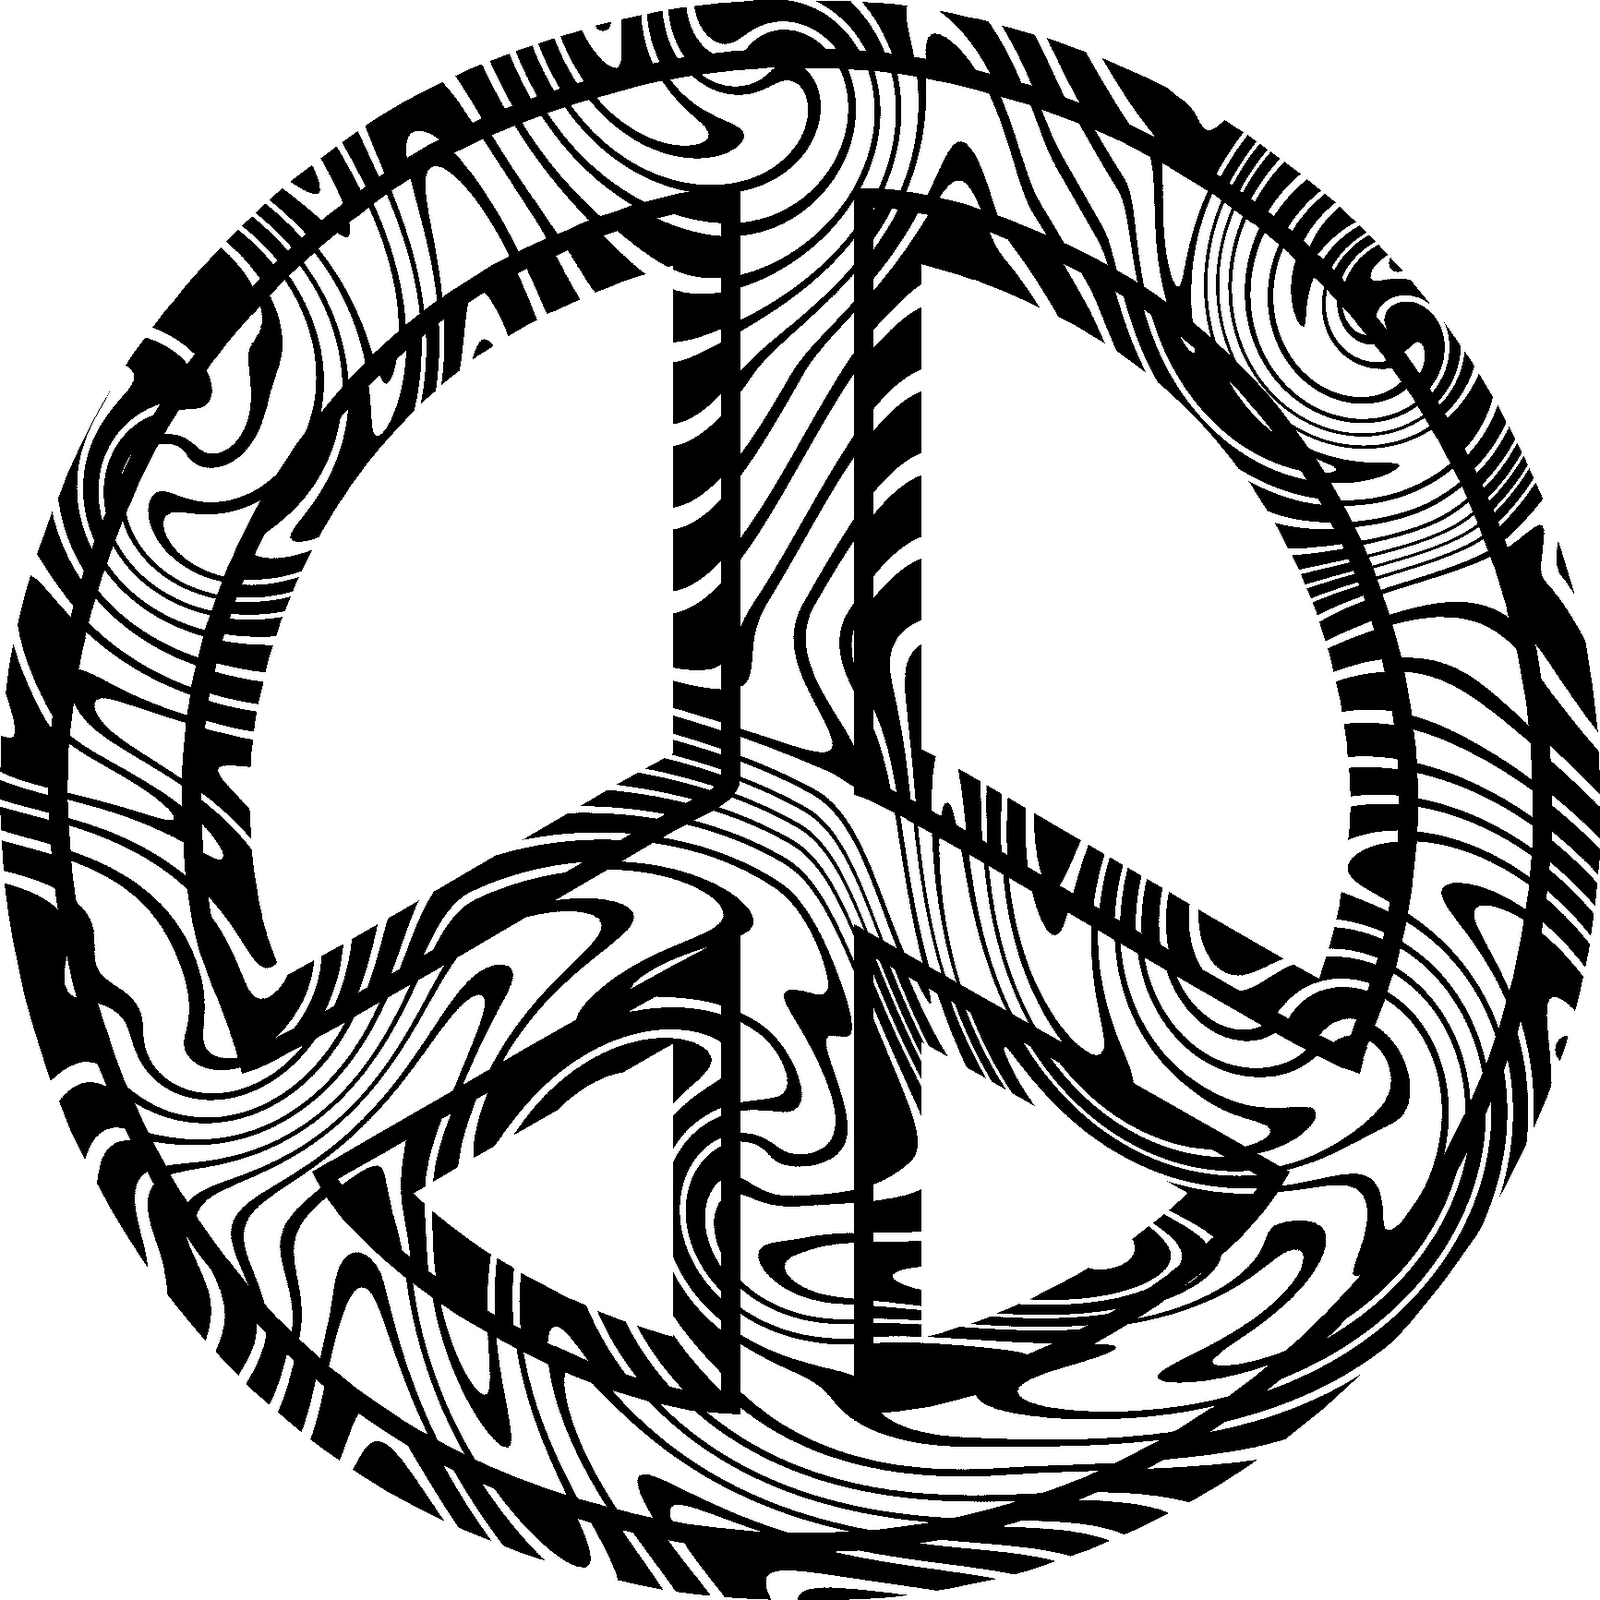 peace coloring pages free printable peace sign coloring pages cool2bkids peace pages coloring